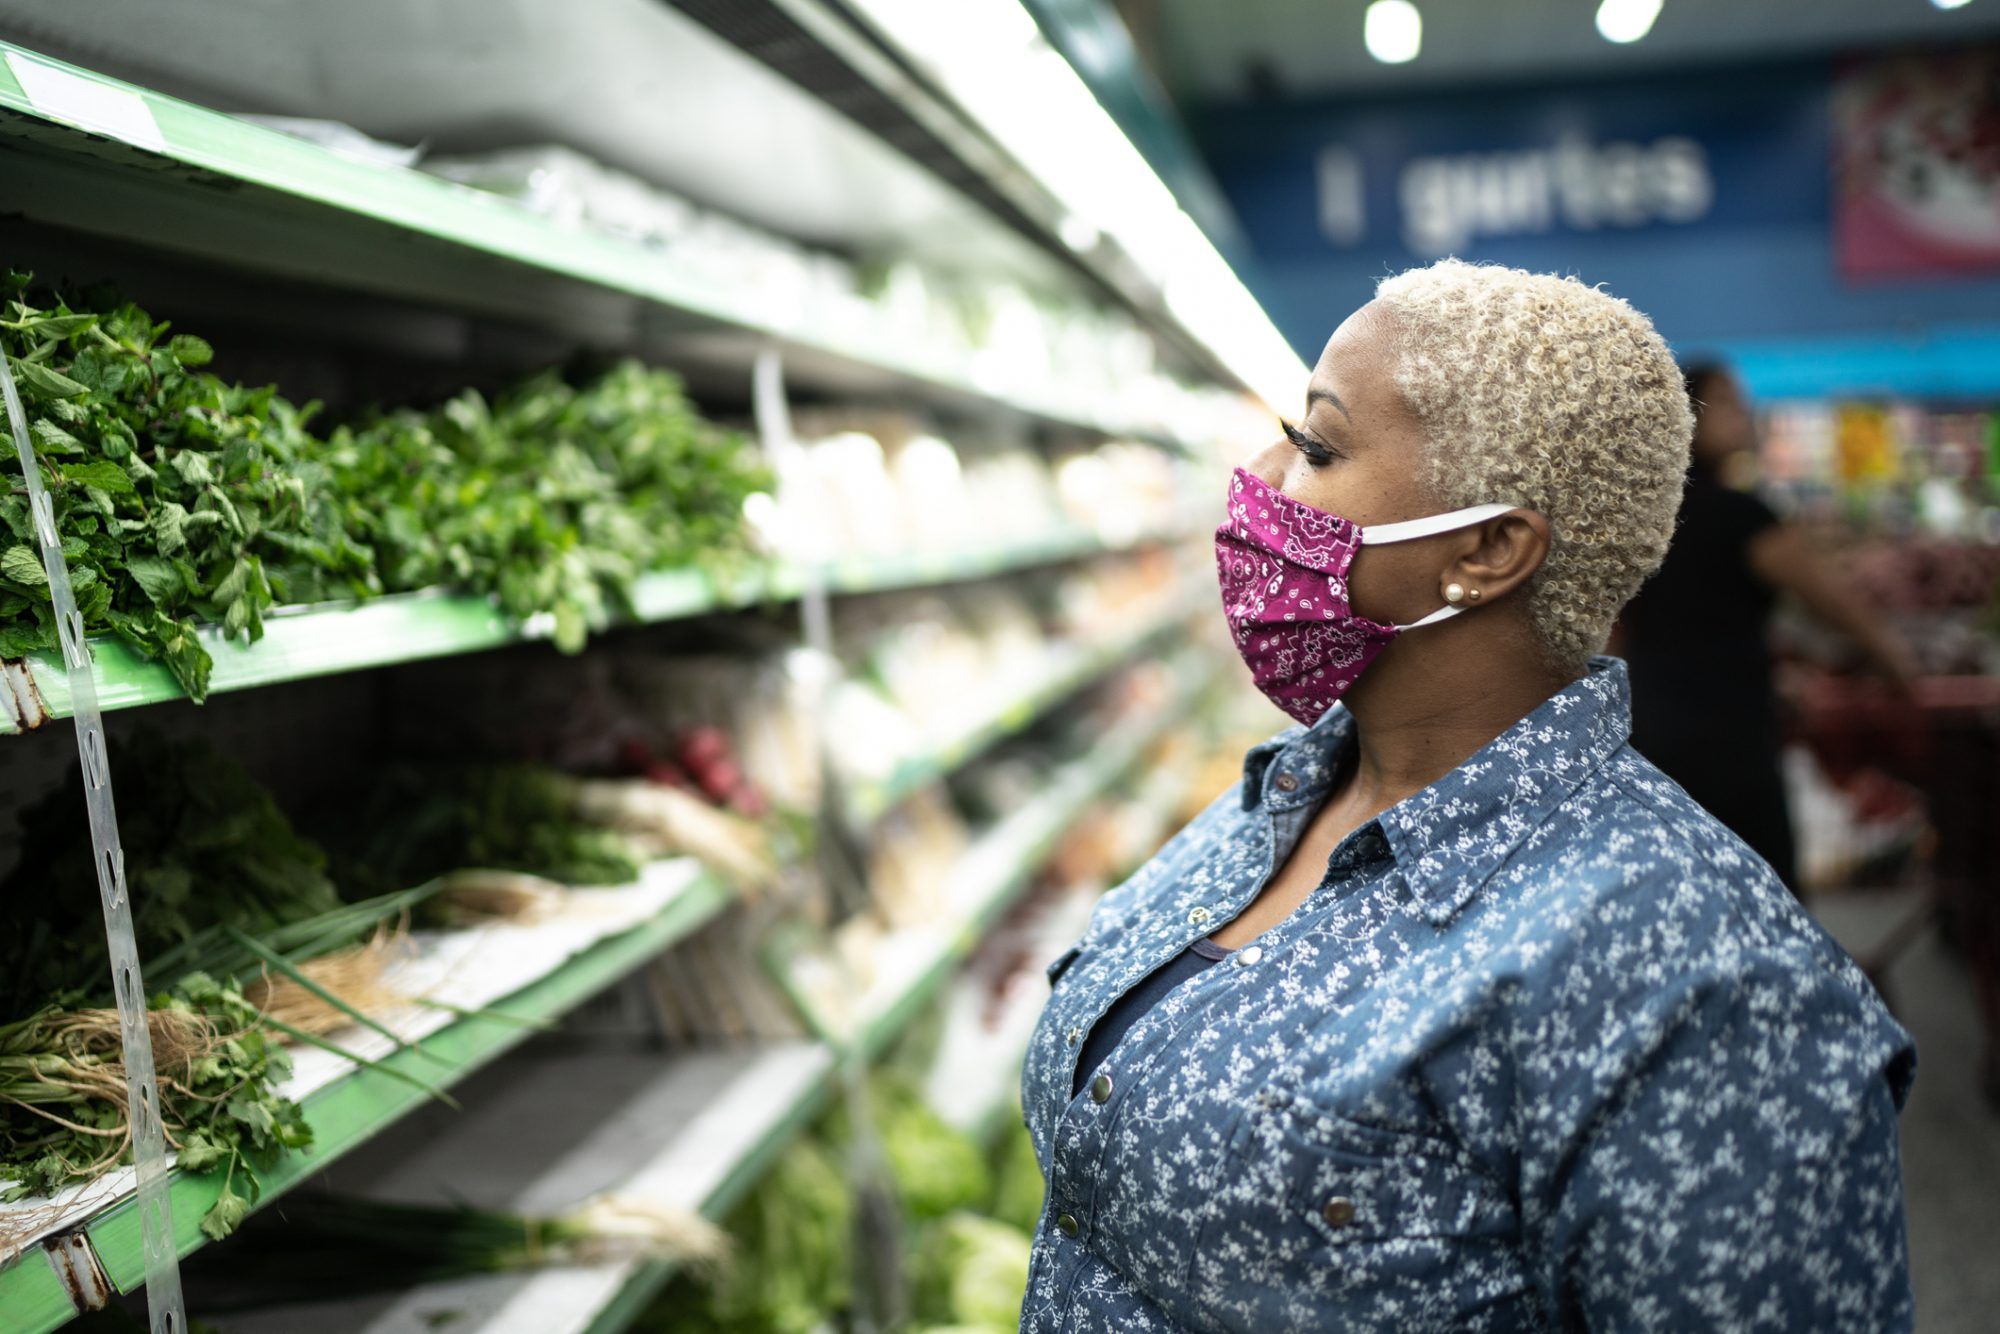 Woman with face mask shopping at supermarket